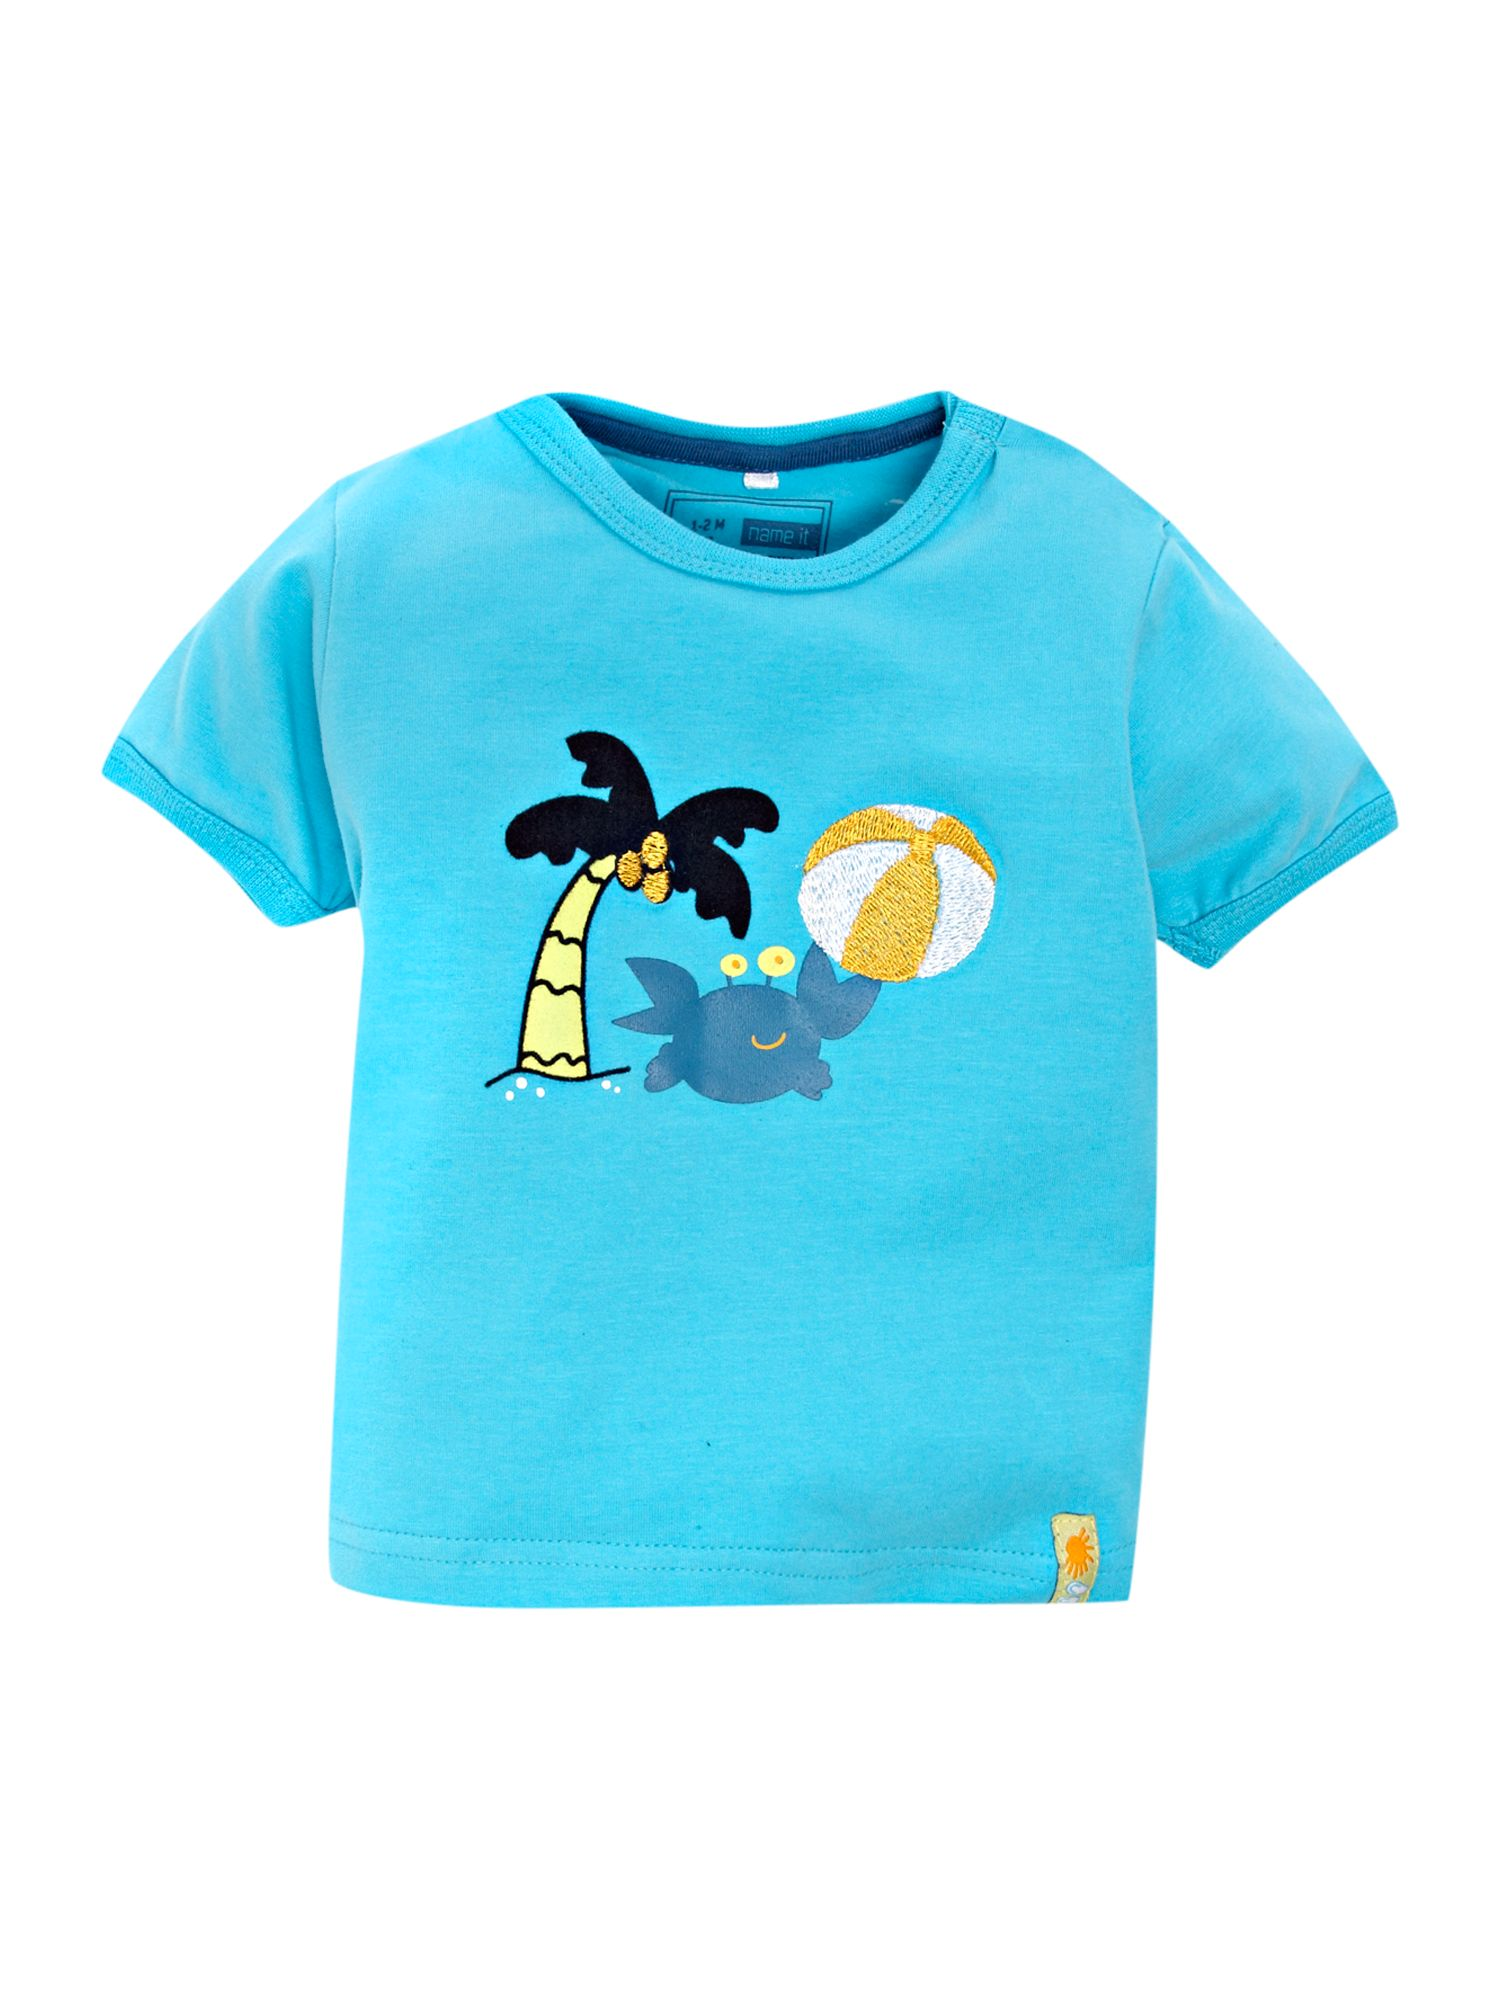 Name it short sleeved crab printed t shirt review for Name printed t shirts online